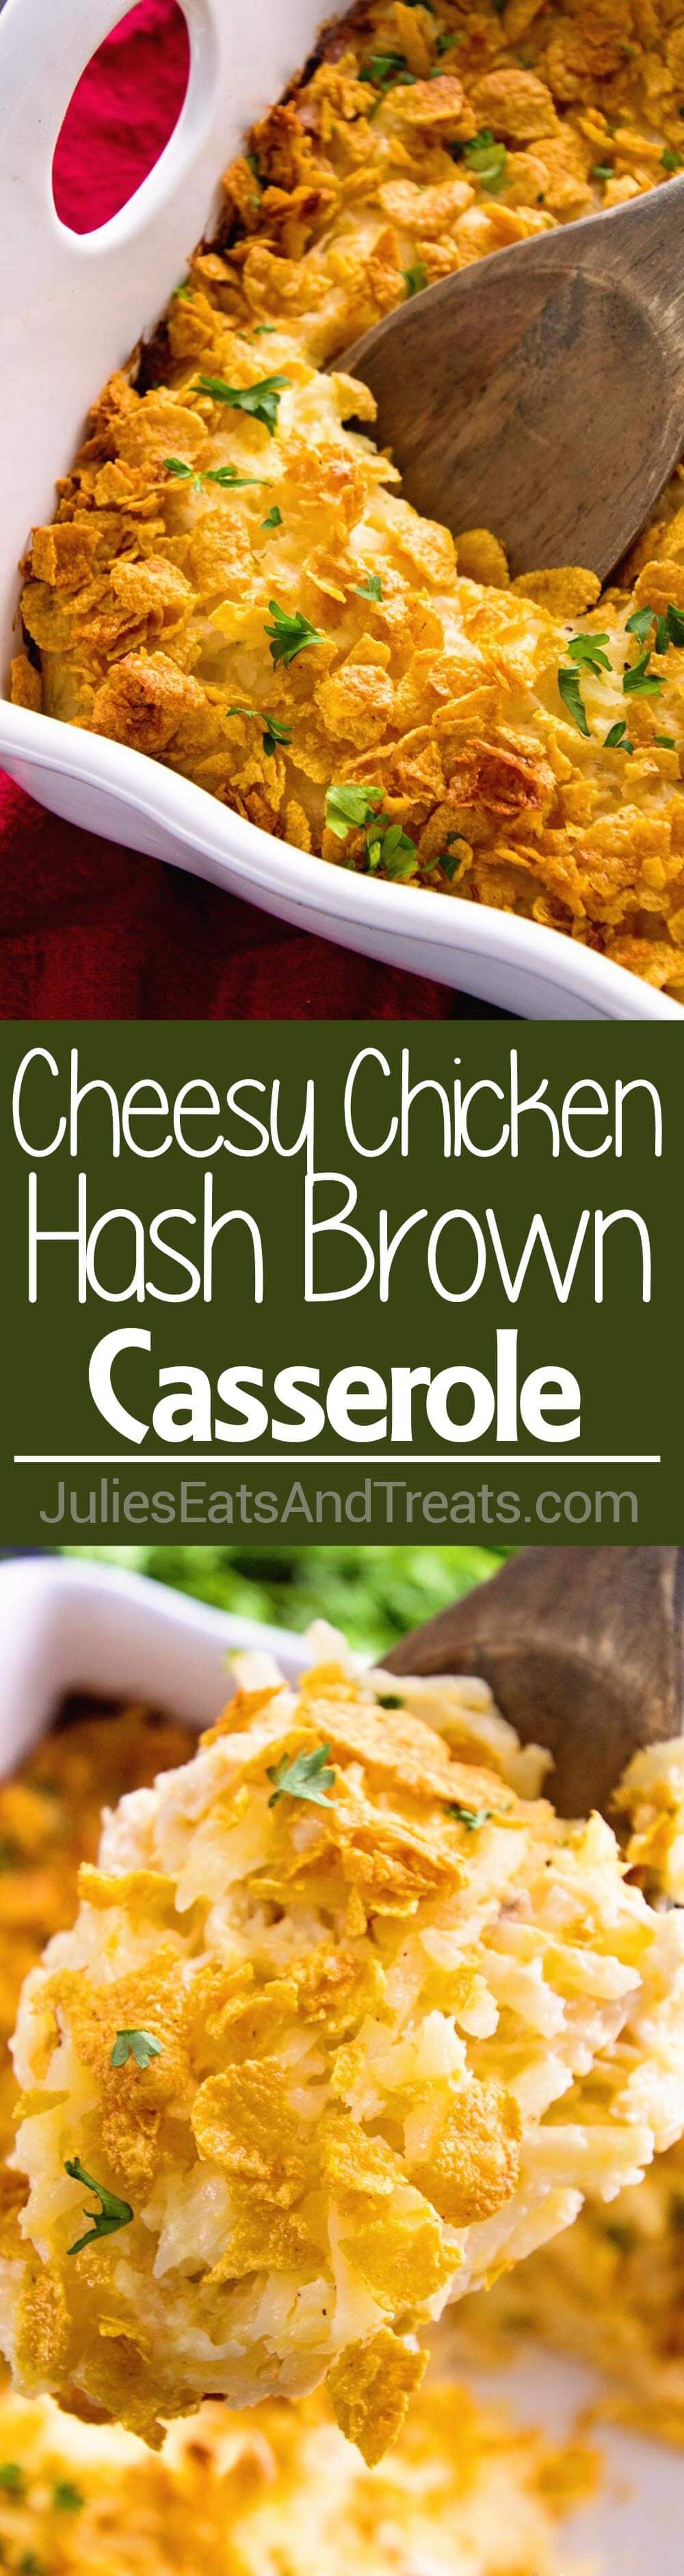 Cheesy Hash Brown Chicken Casserole ~ Your Favorite Cheesy Hash Brown Casserole In a Main Dish! Comforting Casserole Loaded with Hash Browns, Cheese, and Chicken Perfect for Dinner! ~ http://www.julieseatsandtreats.com #ad #breakfastlovers @simplypotatoes